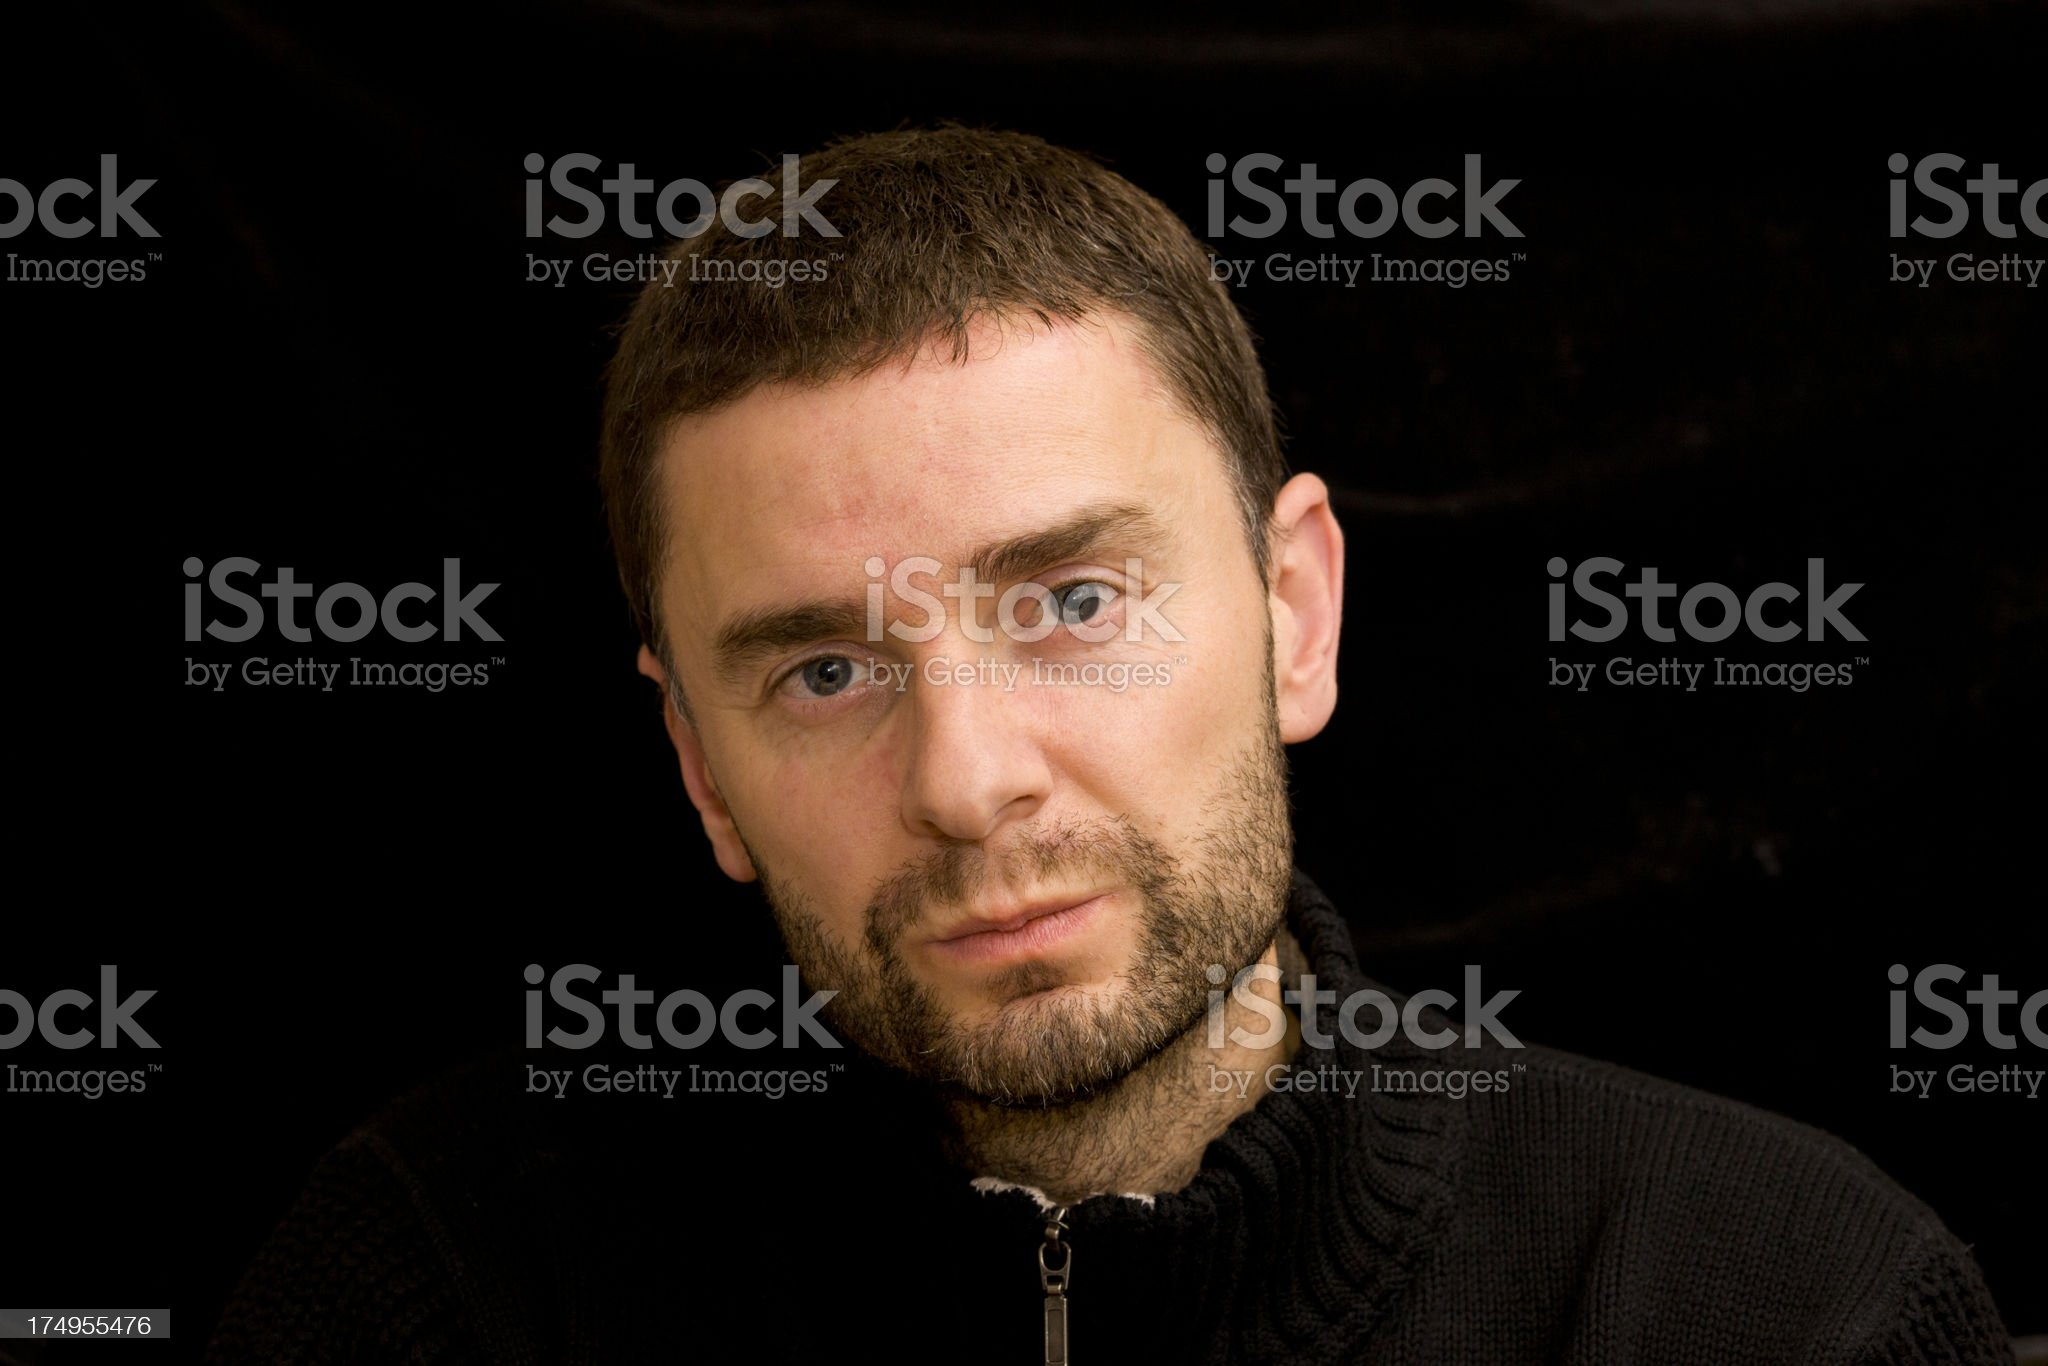 Unhappy expression royalty-free stock photo